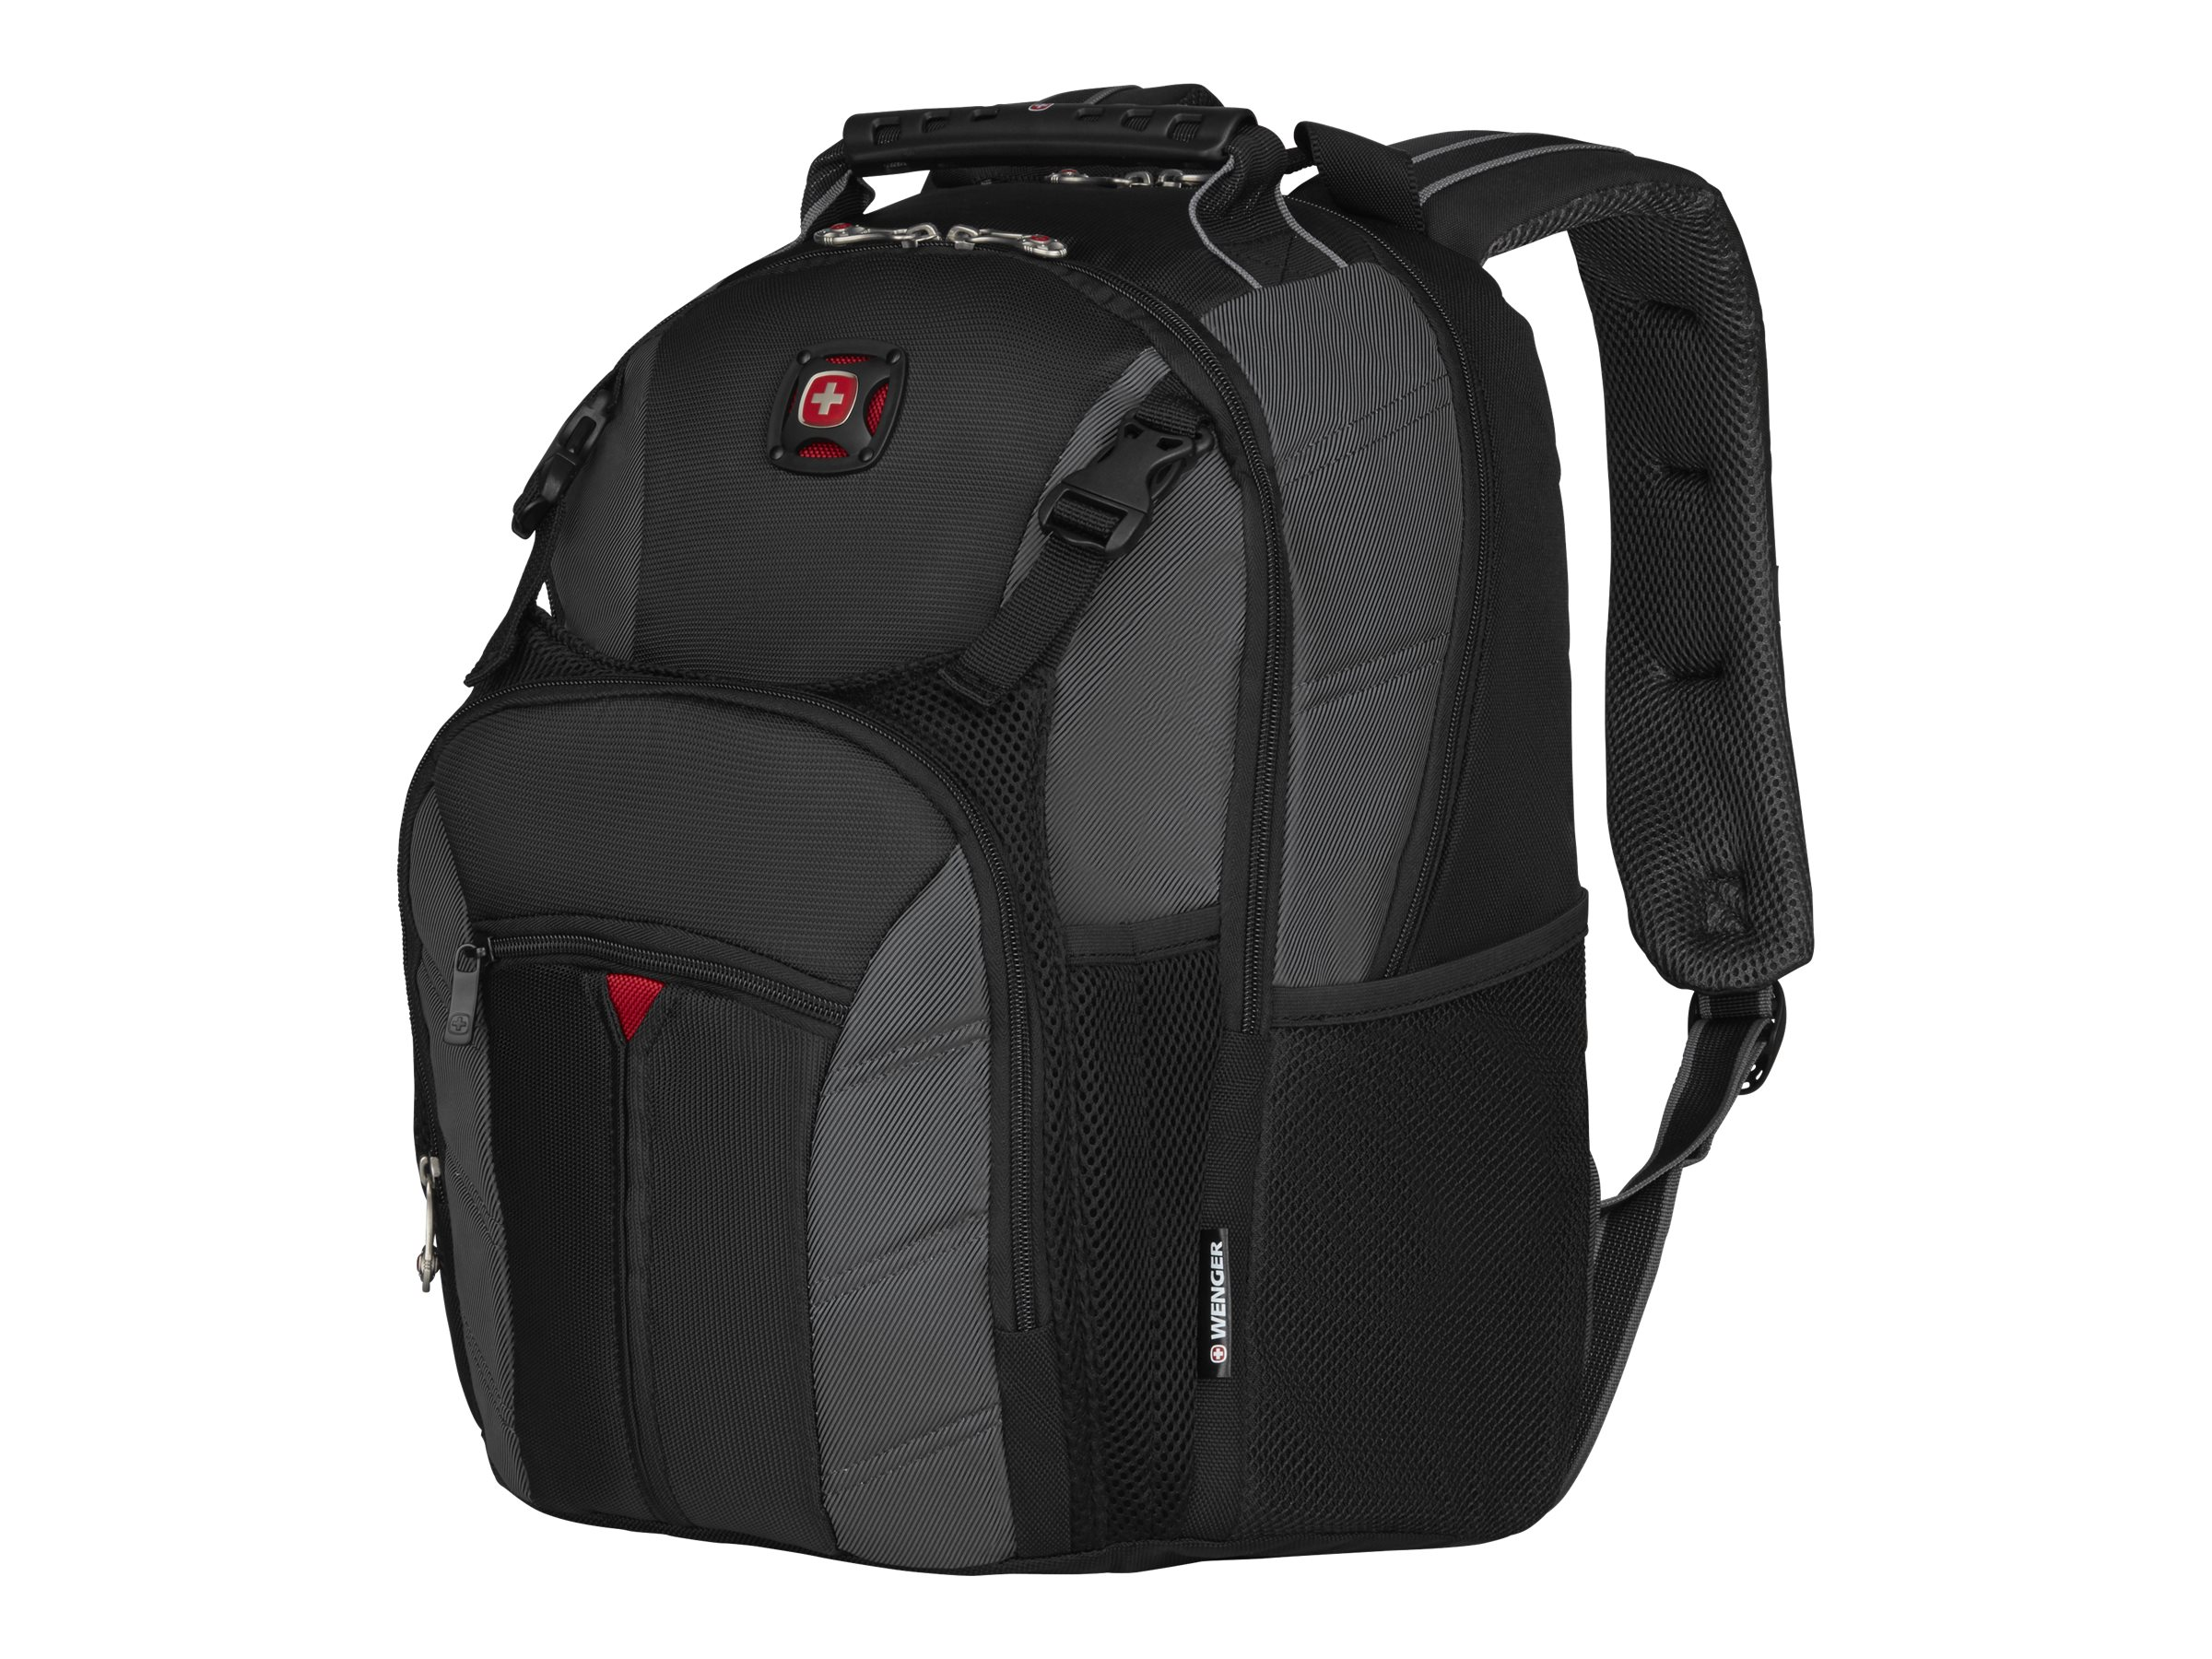 Wenger Sherpa DX notebook carrying backpack